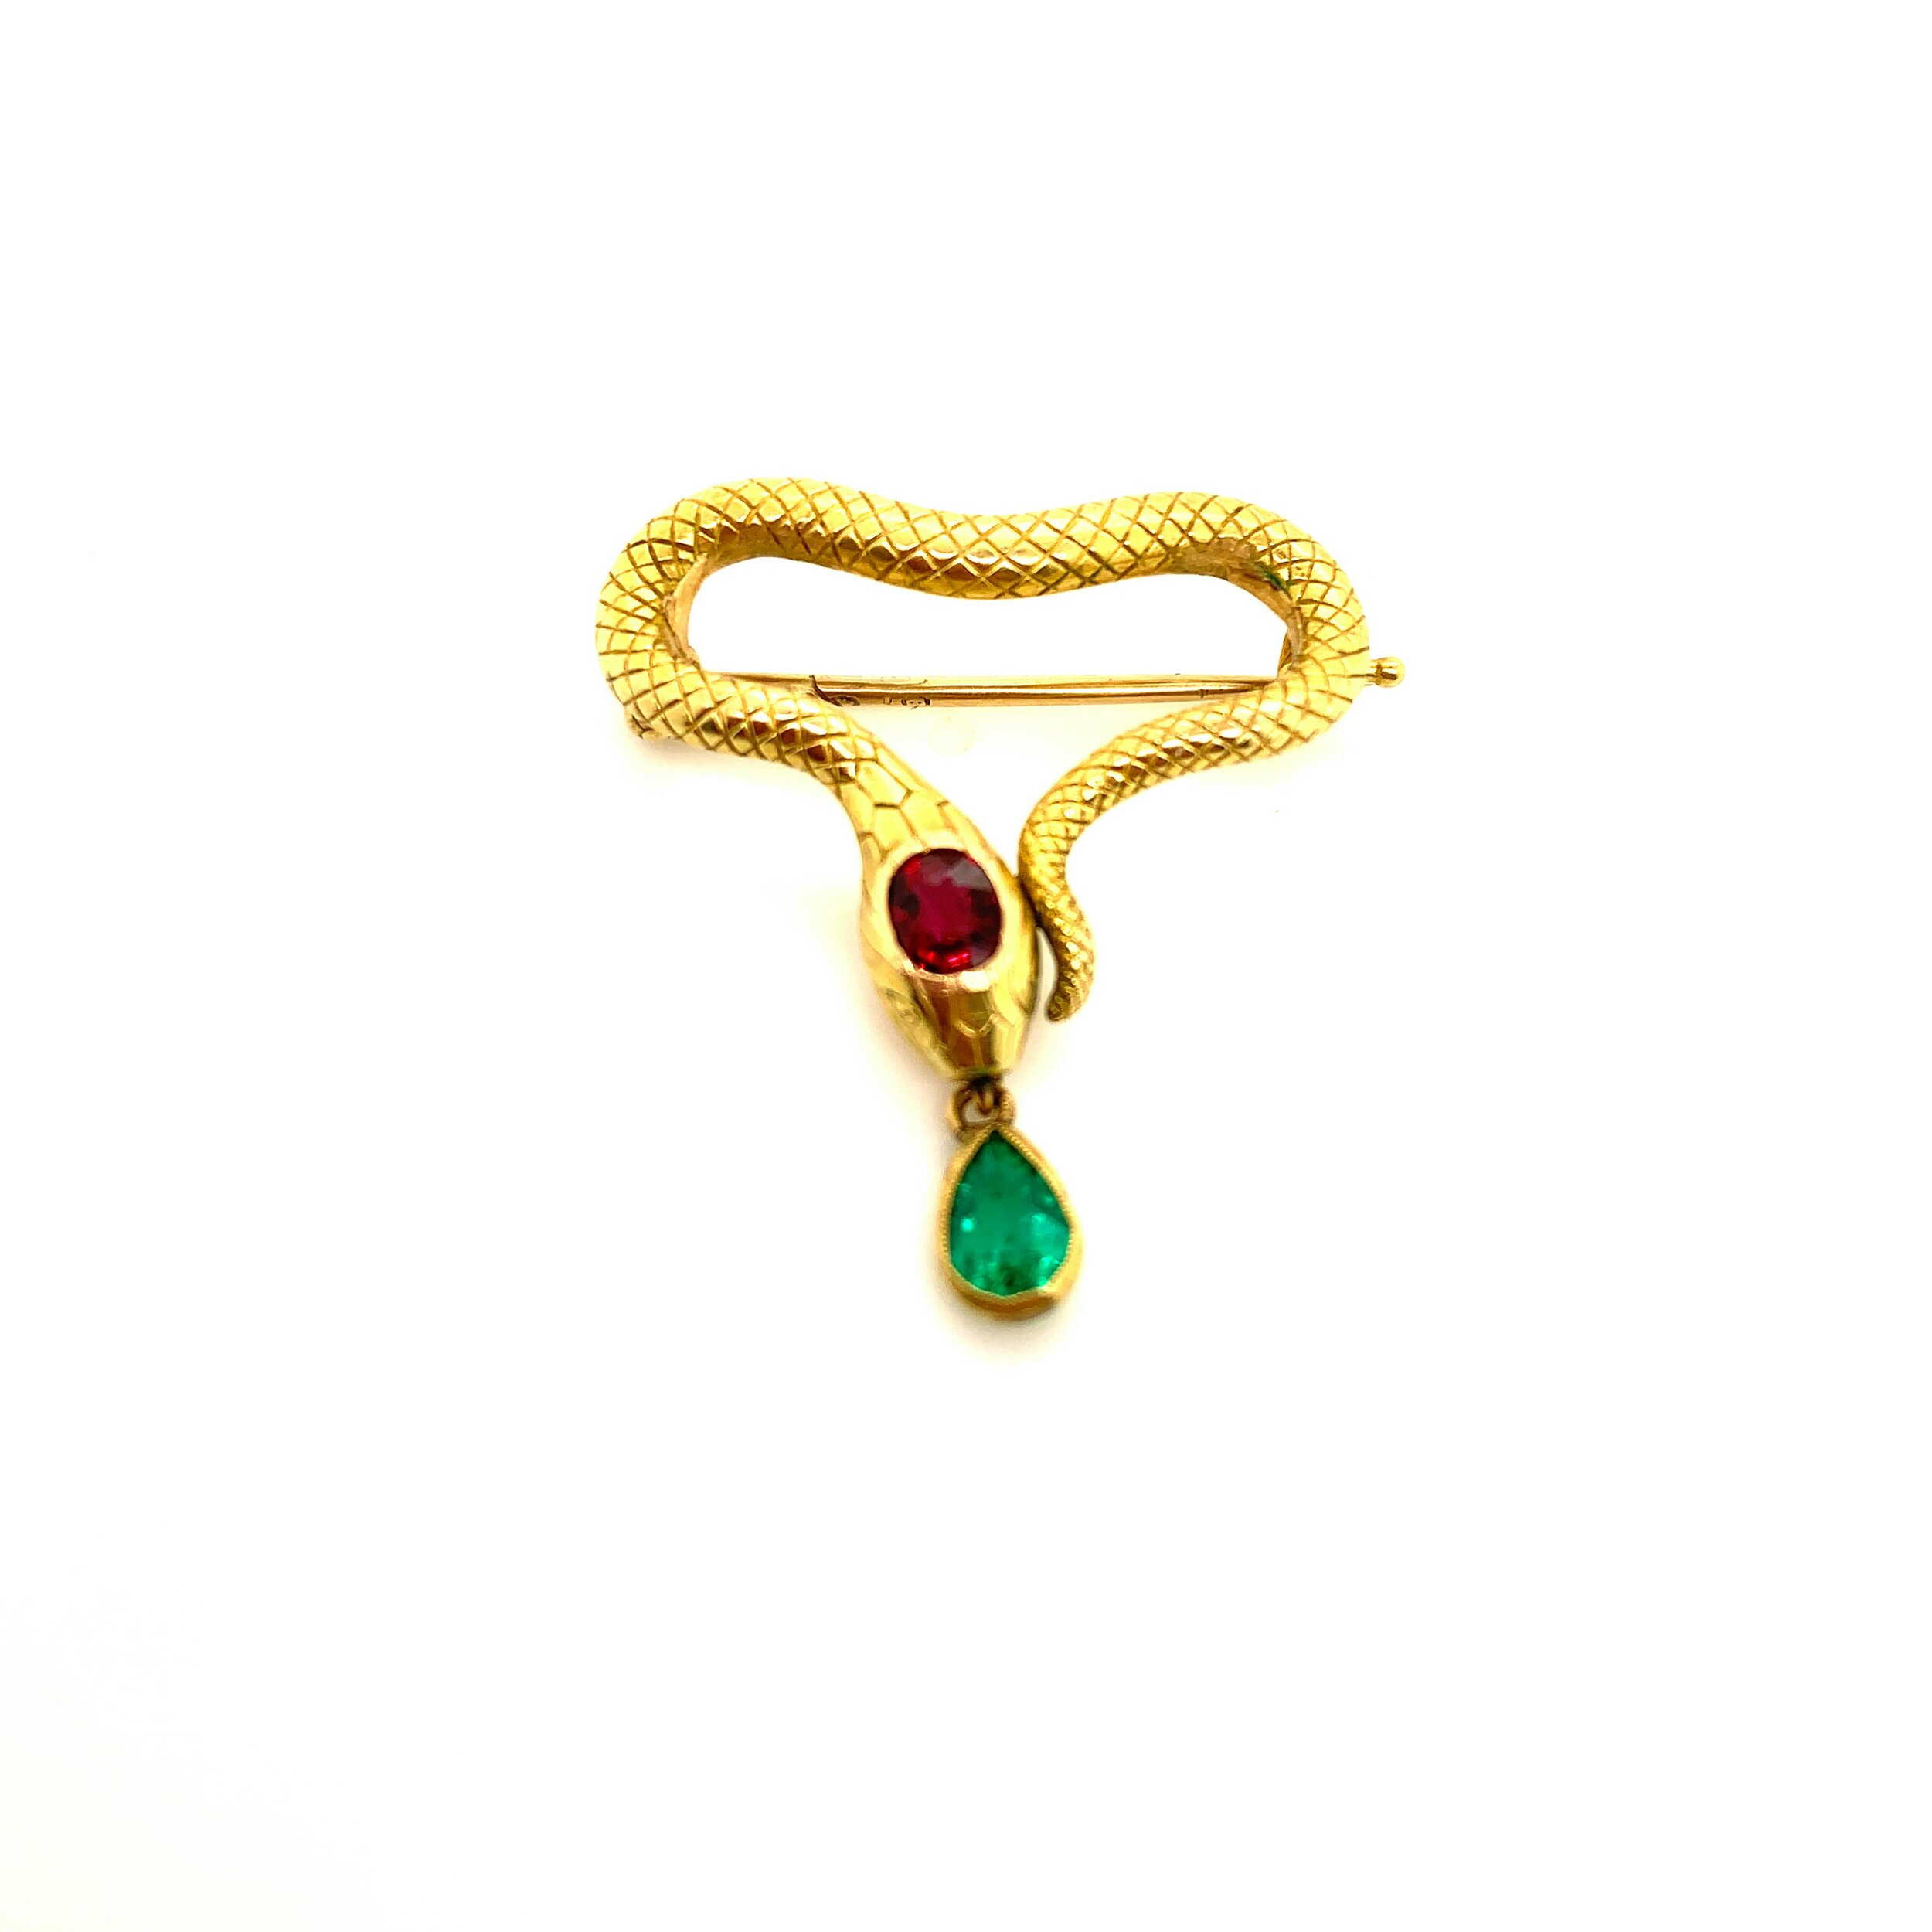 Ruby and Emerald Serpent Brooch   Est. US$ 3,500-4,500